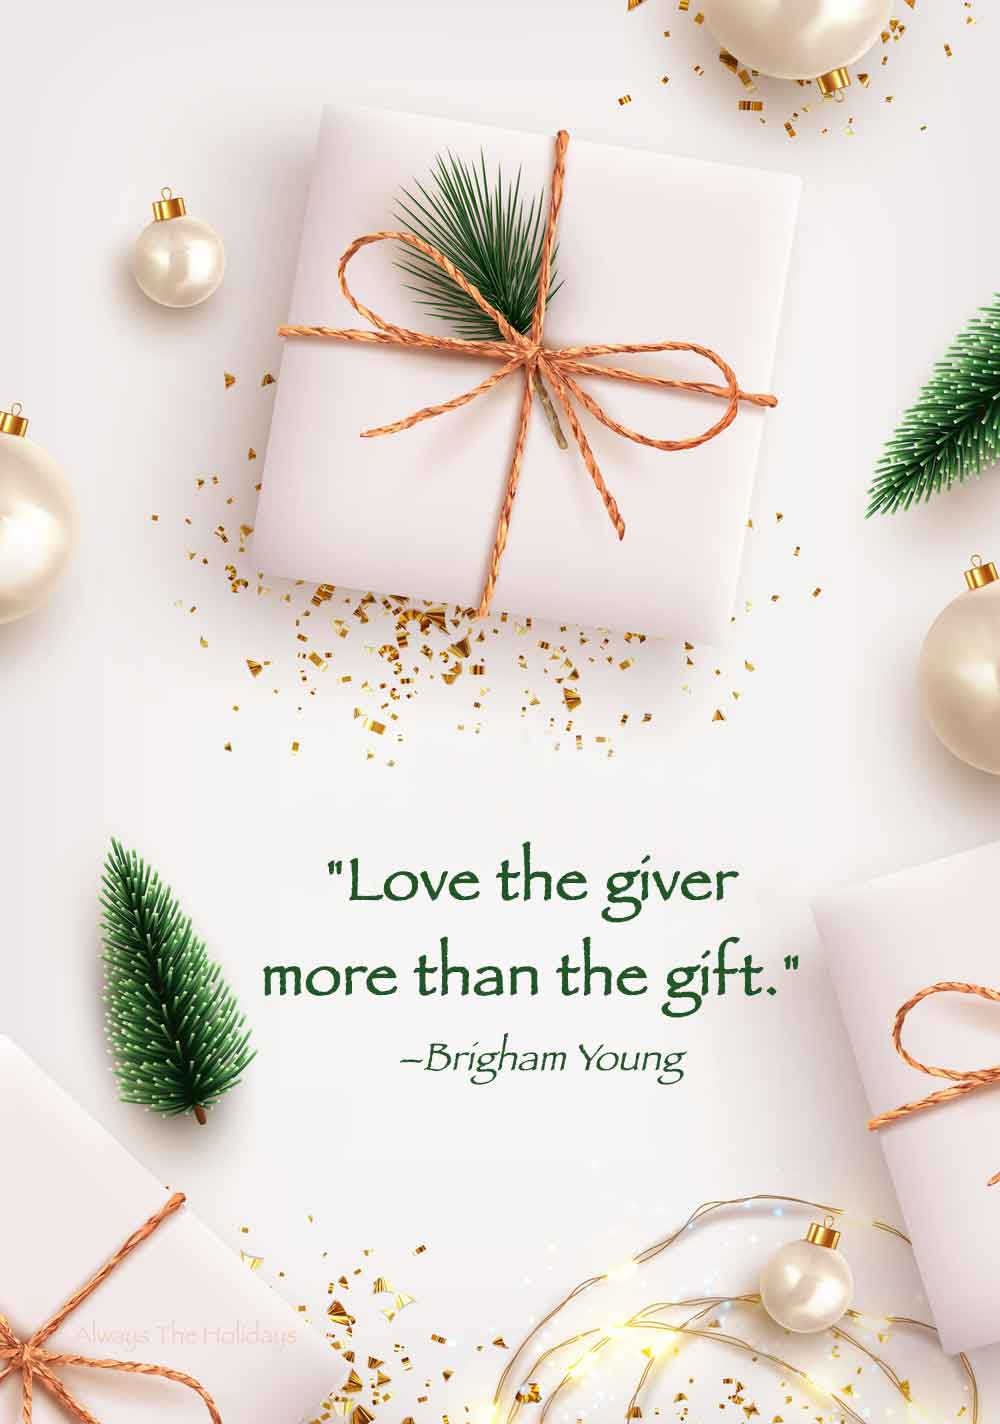 White presents with jute ties, white ornaments and tiny green trees on a white background with a Christmas love quote on it.